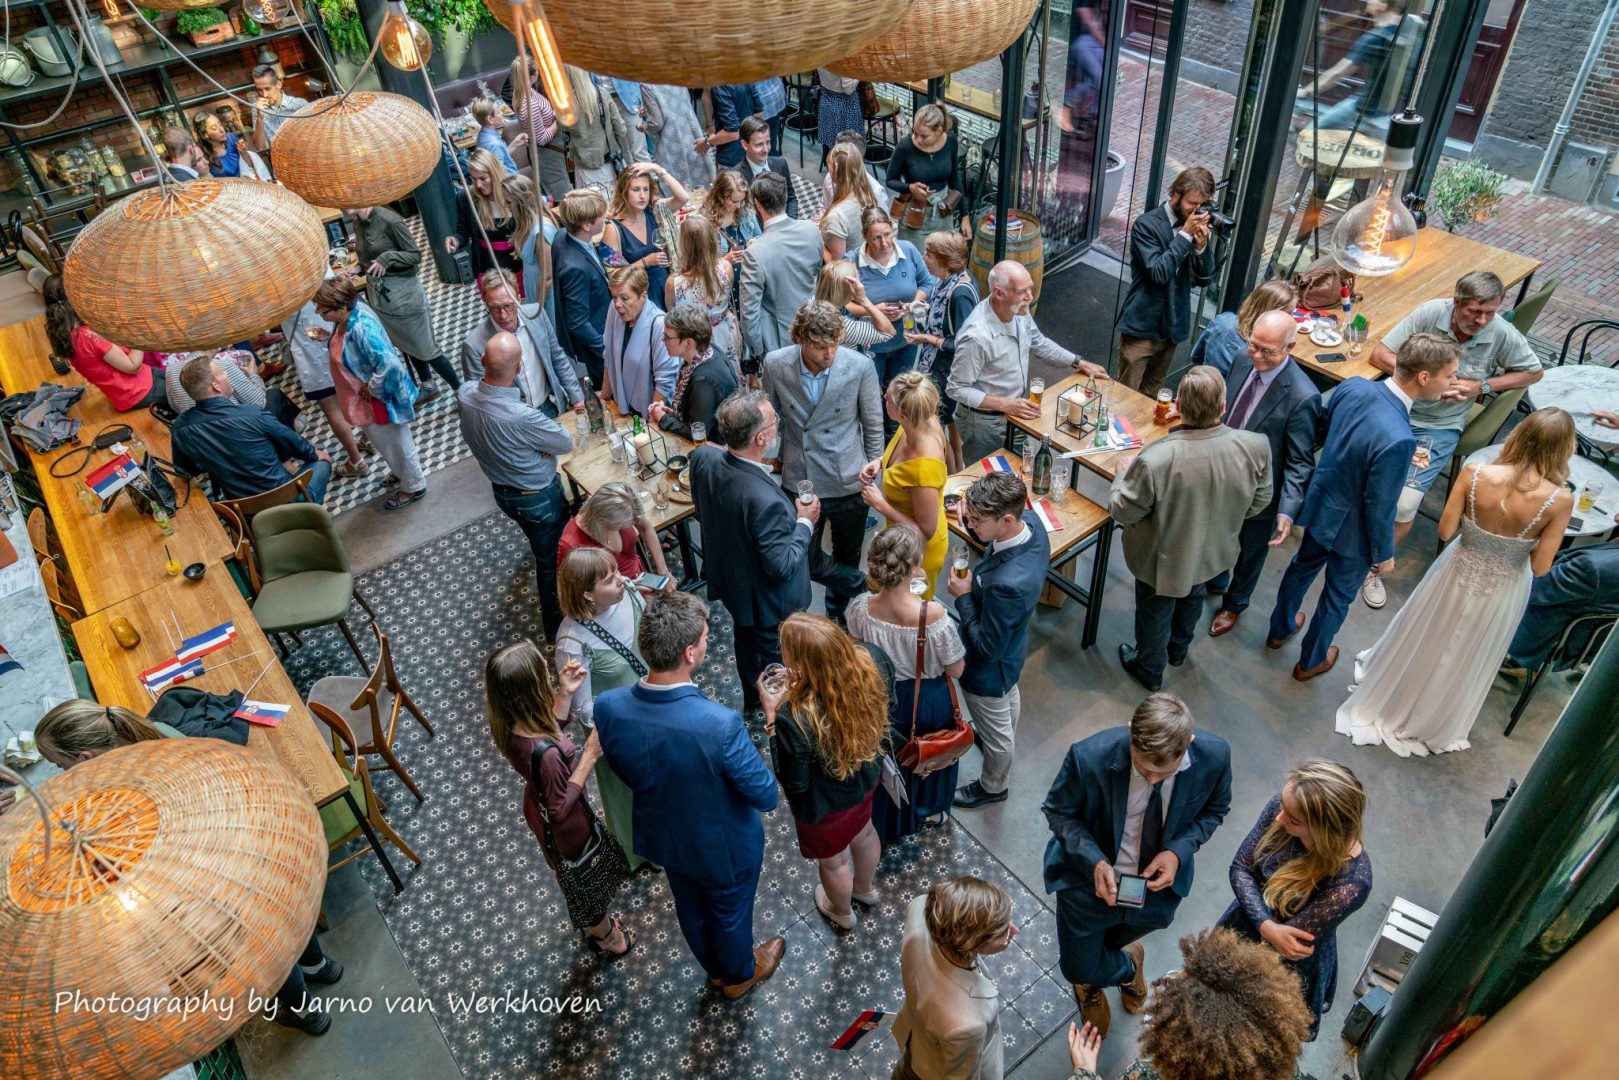 Gathering of guests and family in 'De Waag', Leiden.